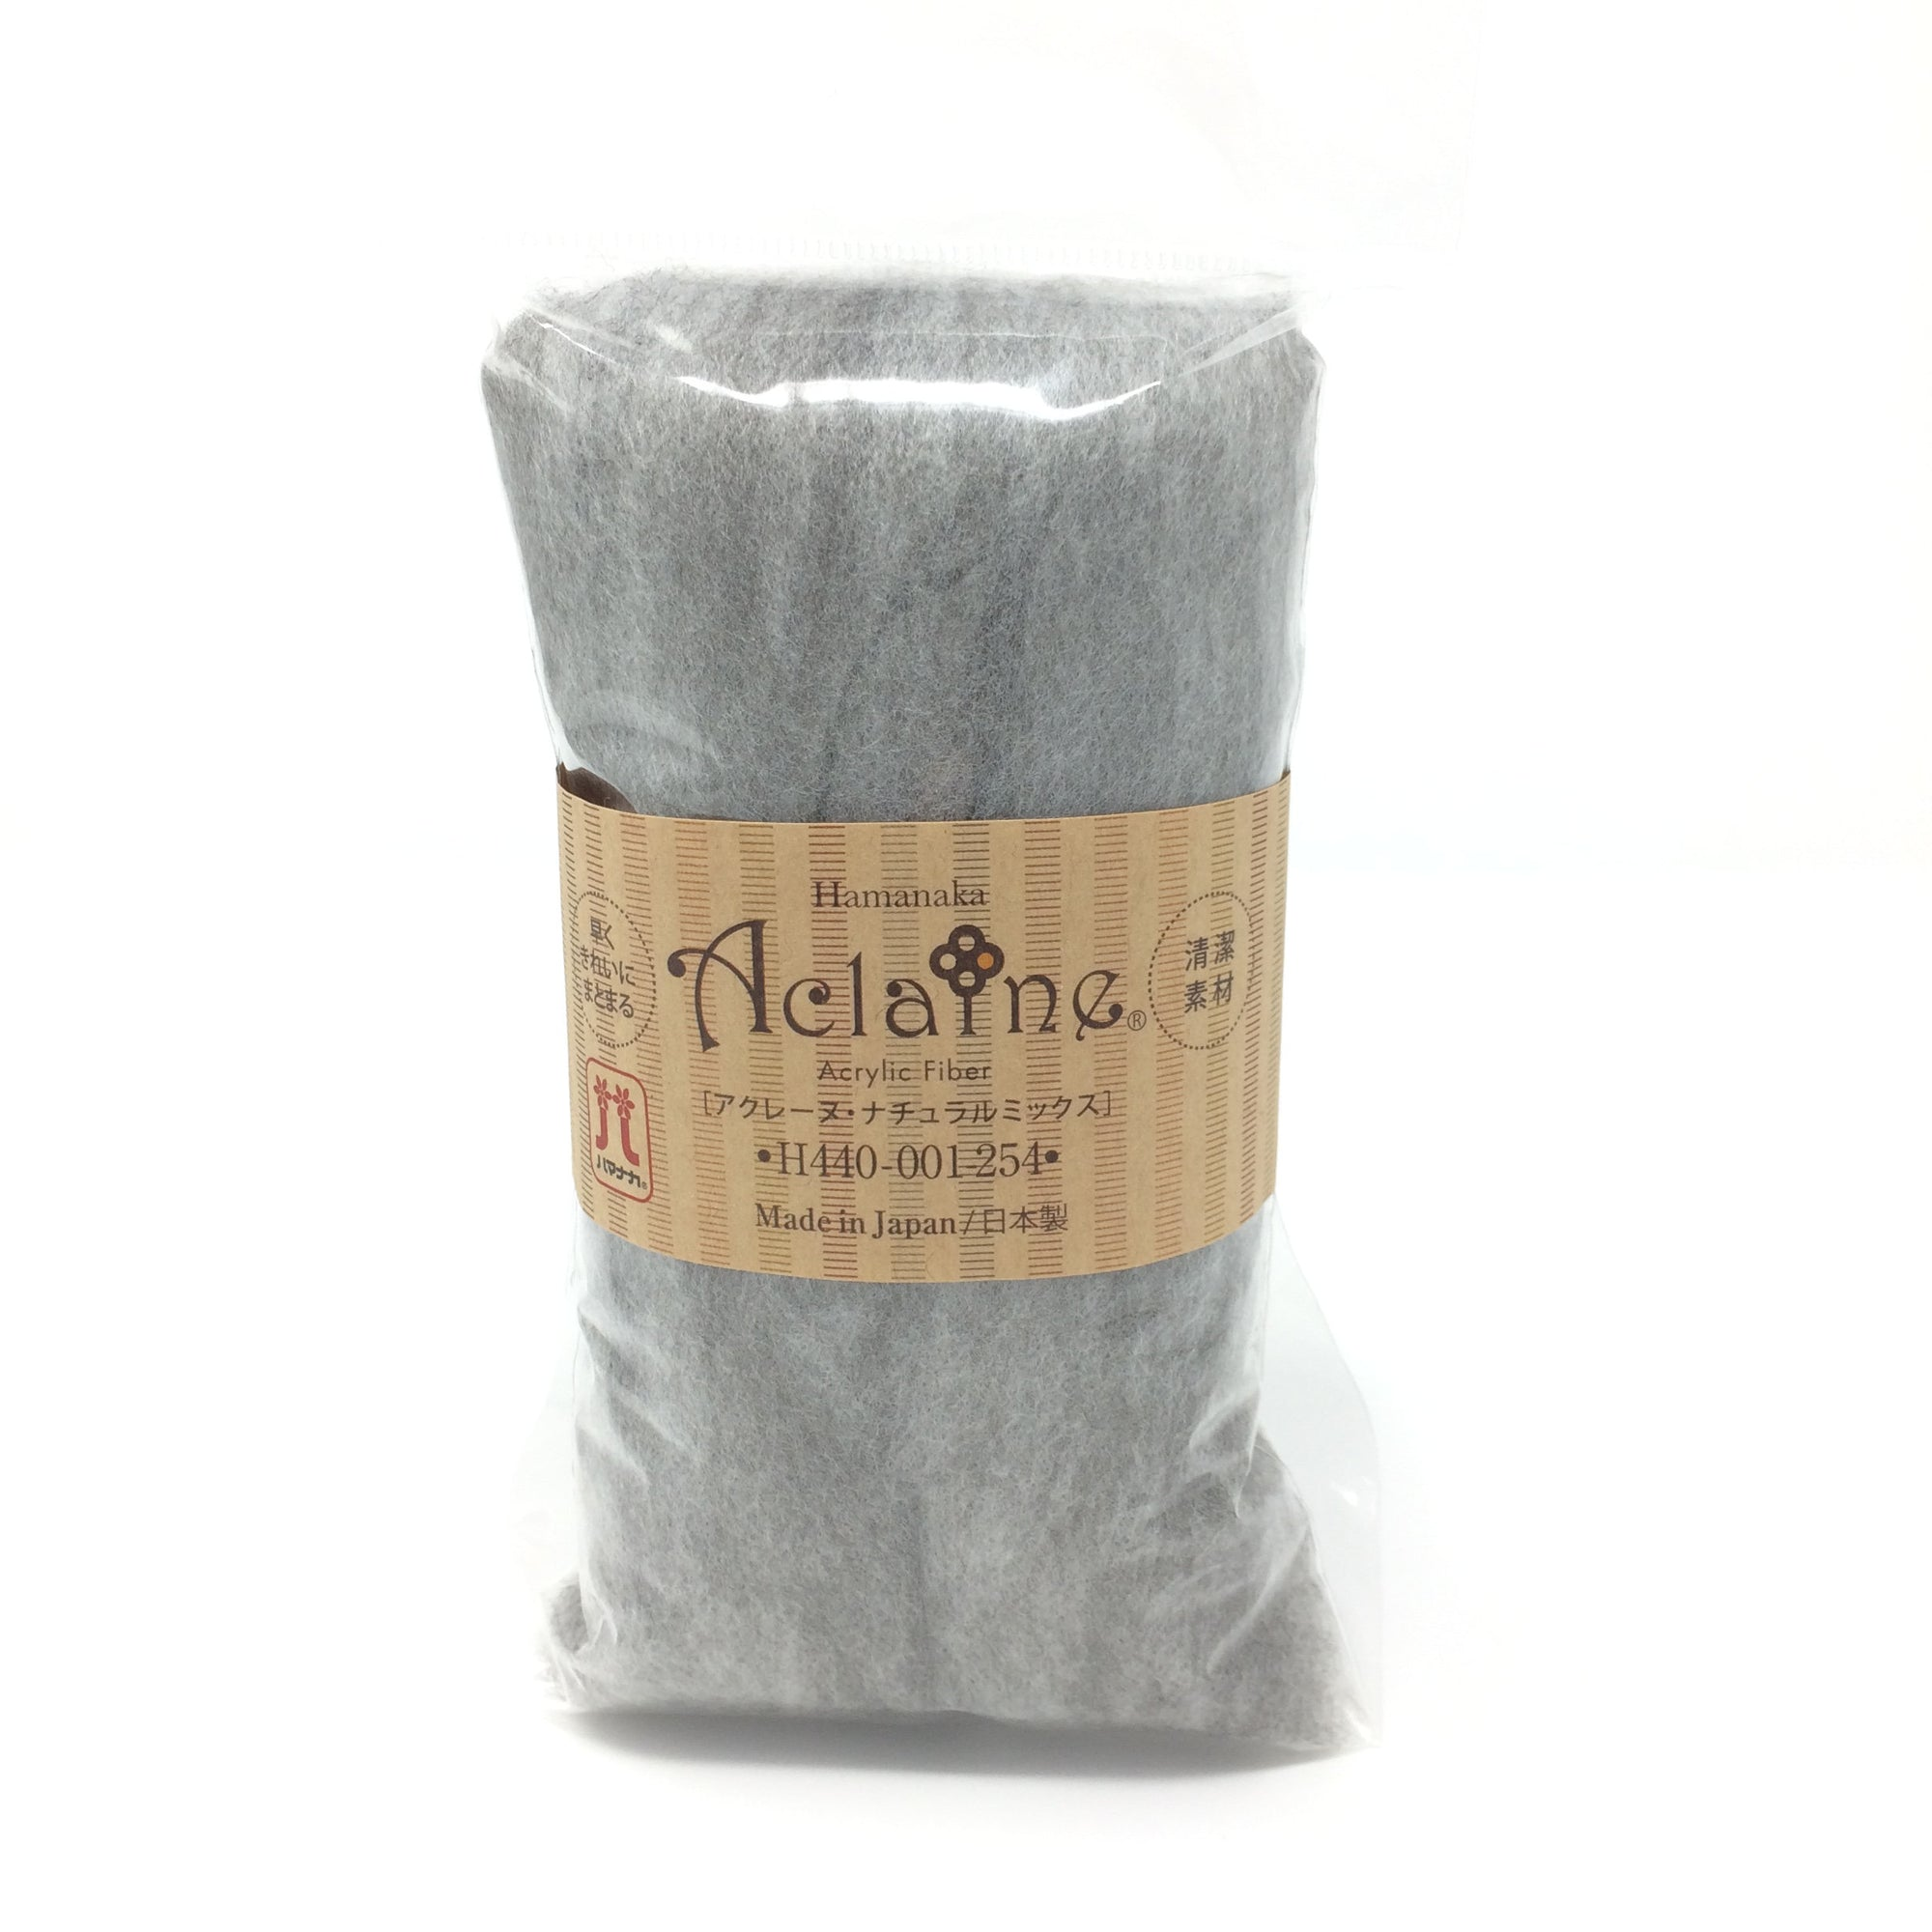 "Japanese Hamanaka Aclaine ""Natural Mix"" Acrylic Fibre for Needle Felting. 15g pack - Natural Grey"